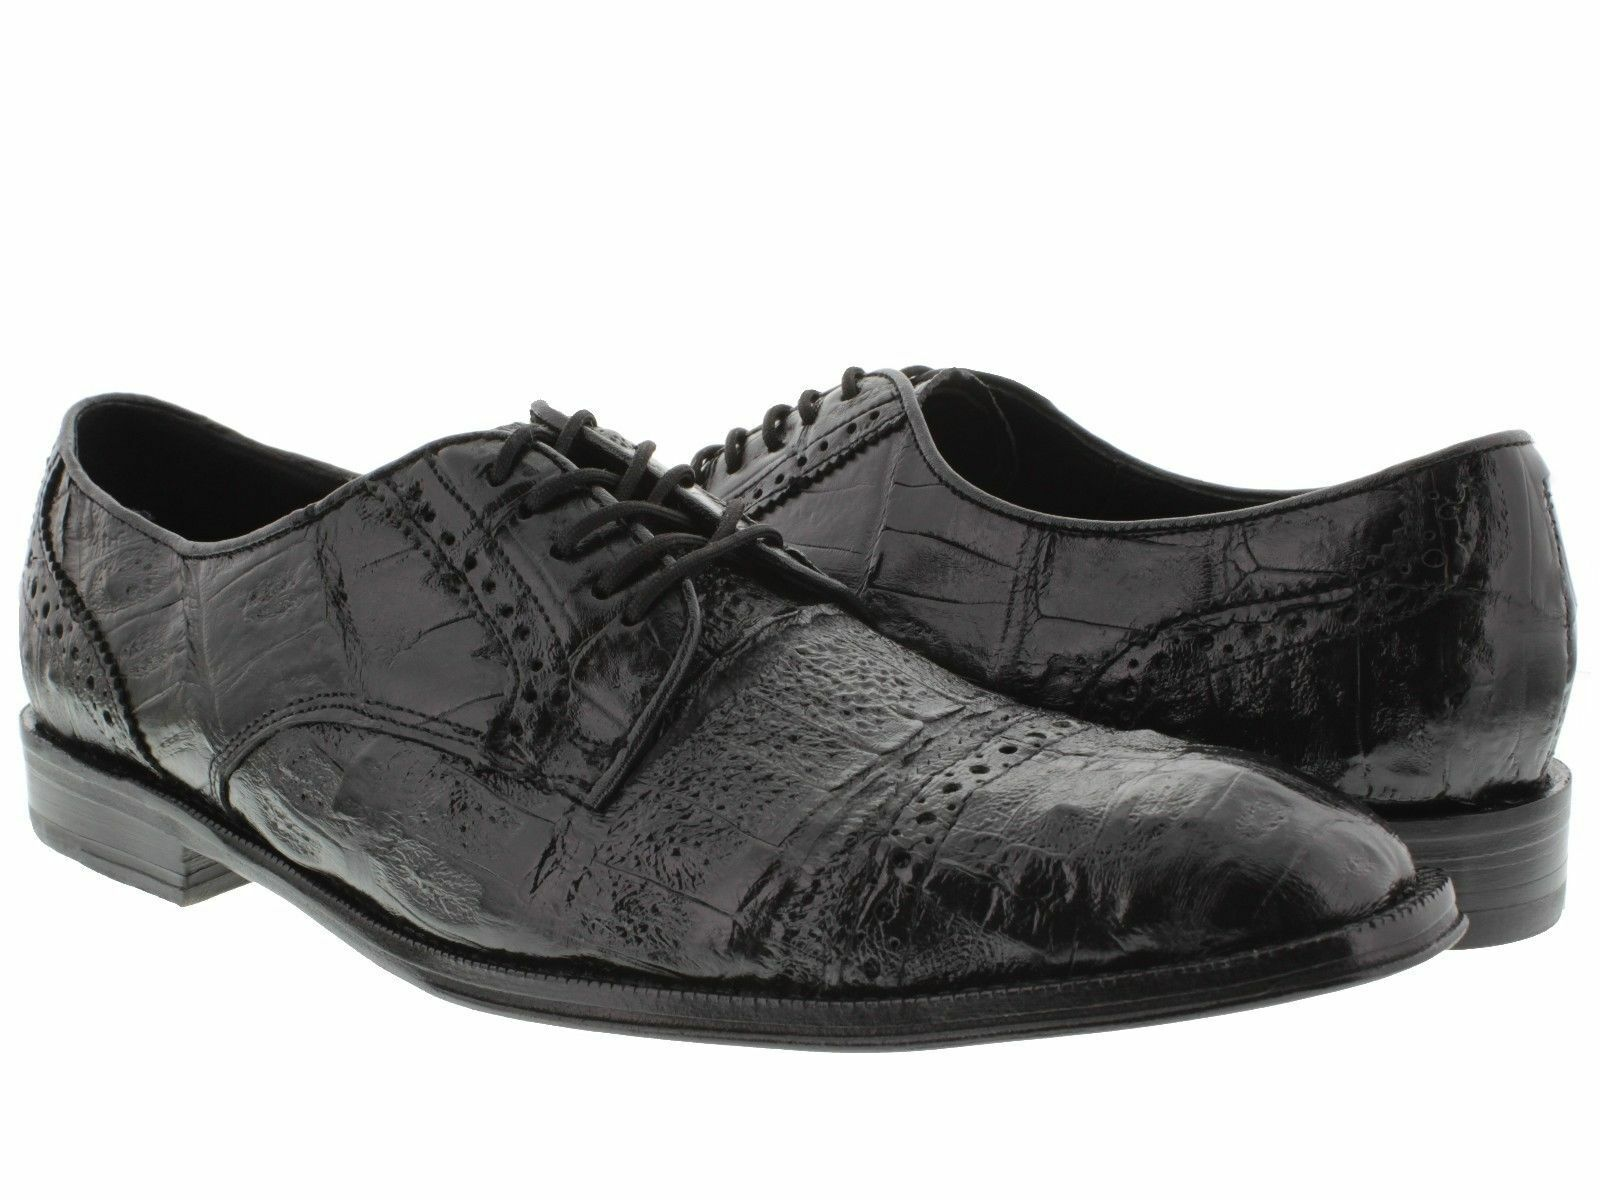 Men's Black Derby Dress shoes Real Crocodile Exotic Skin Leather